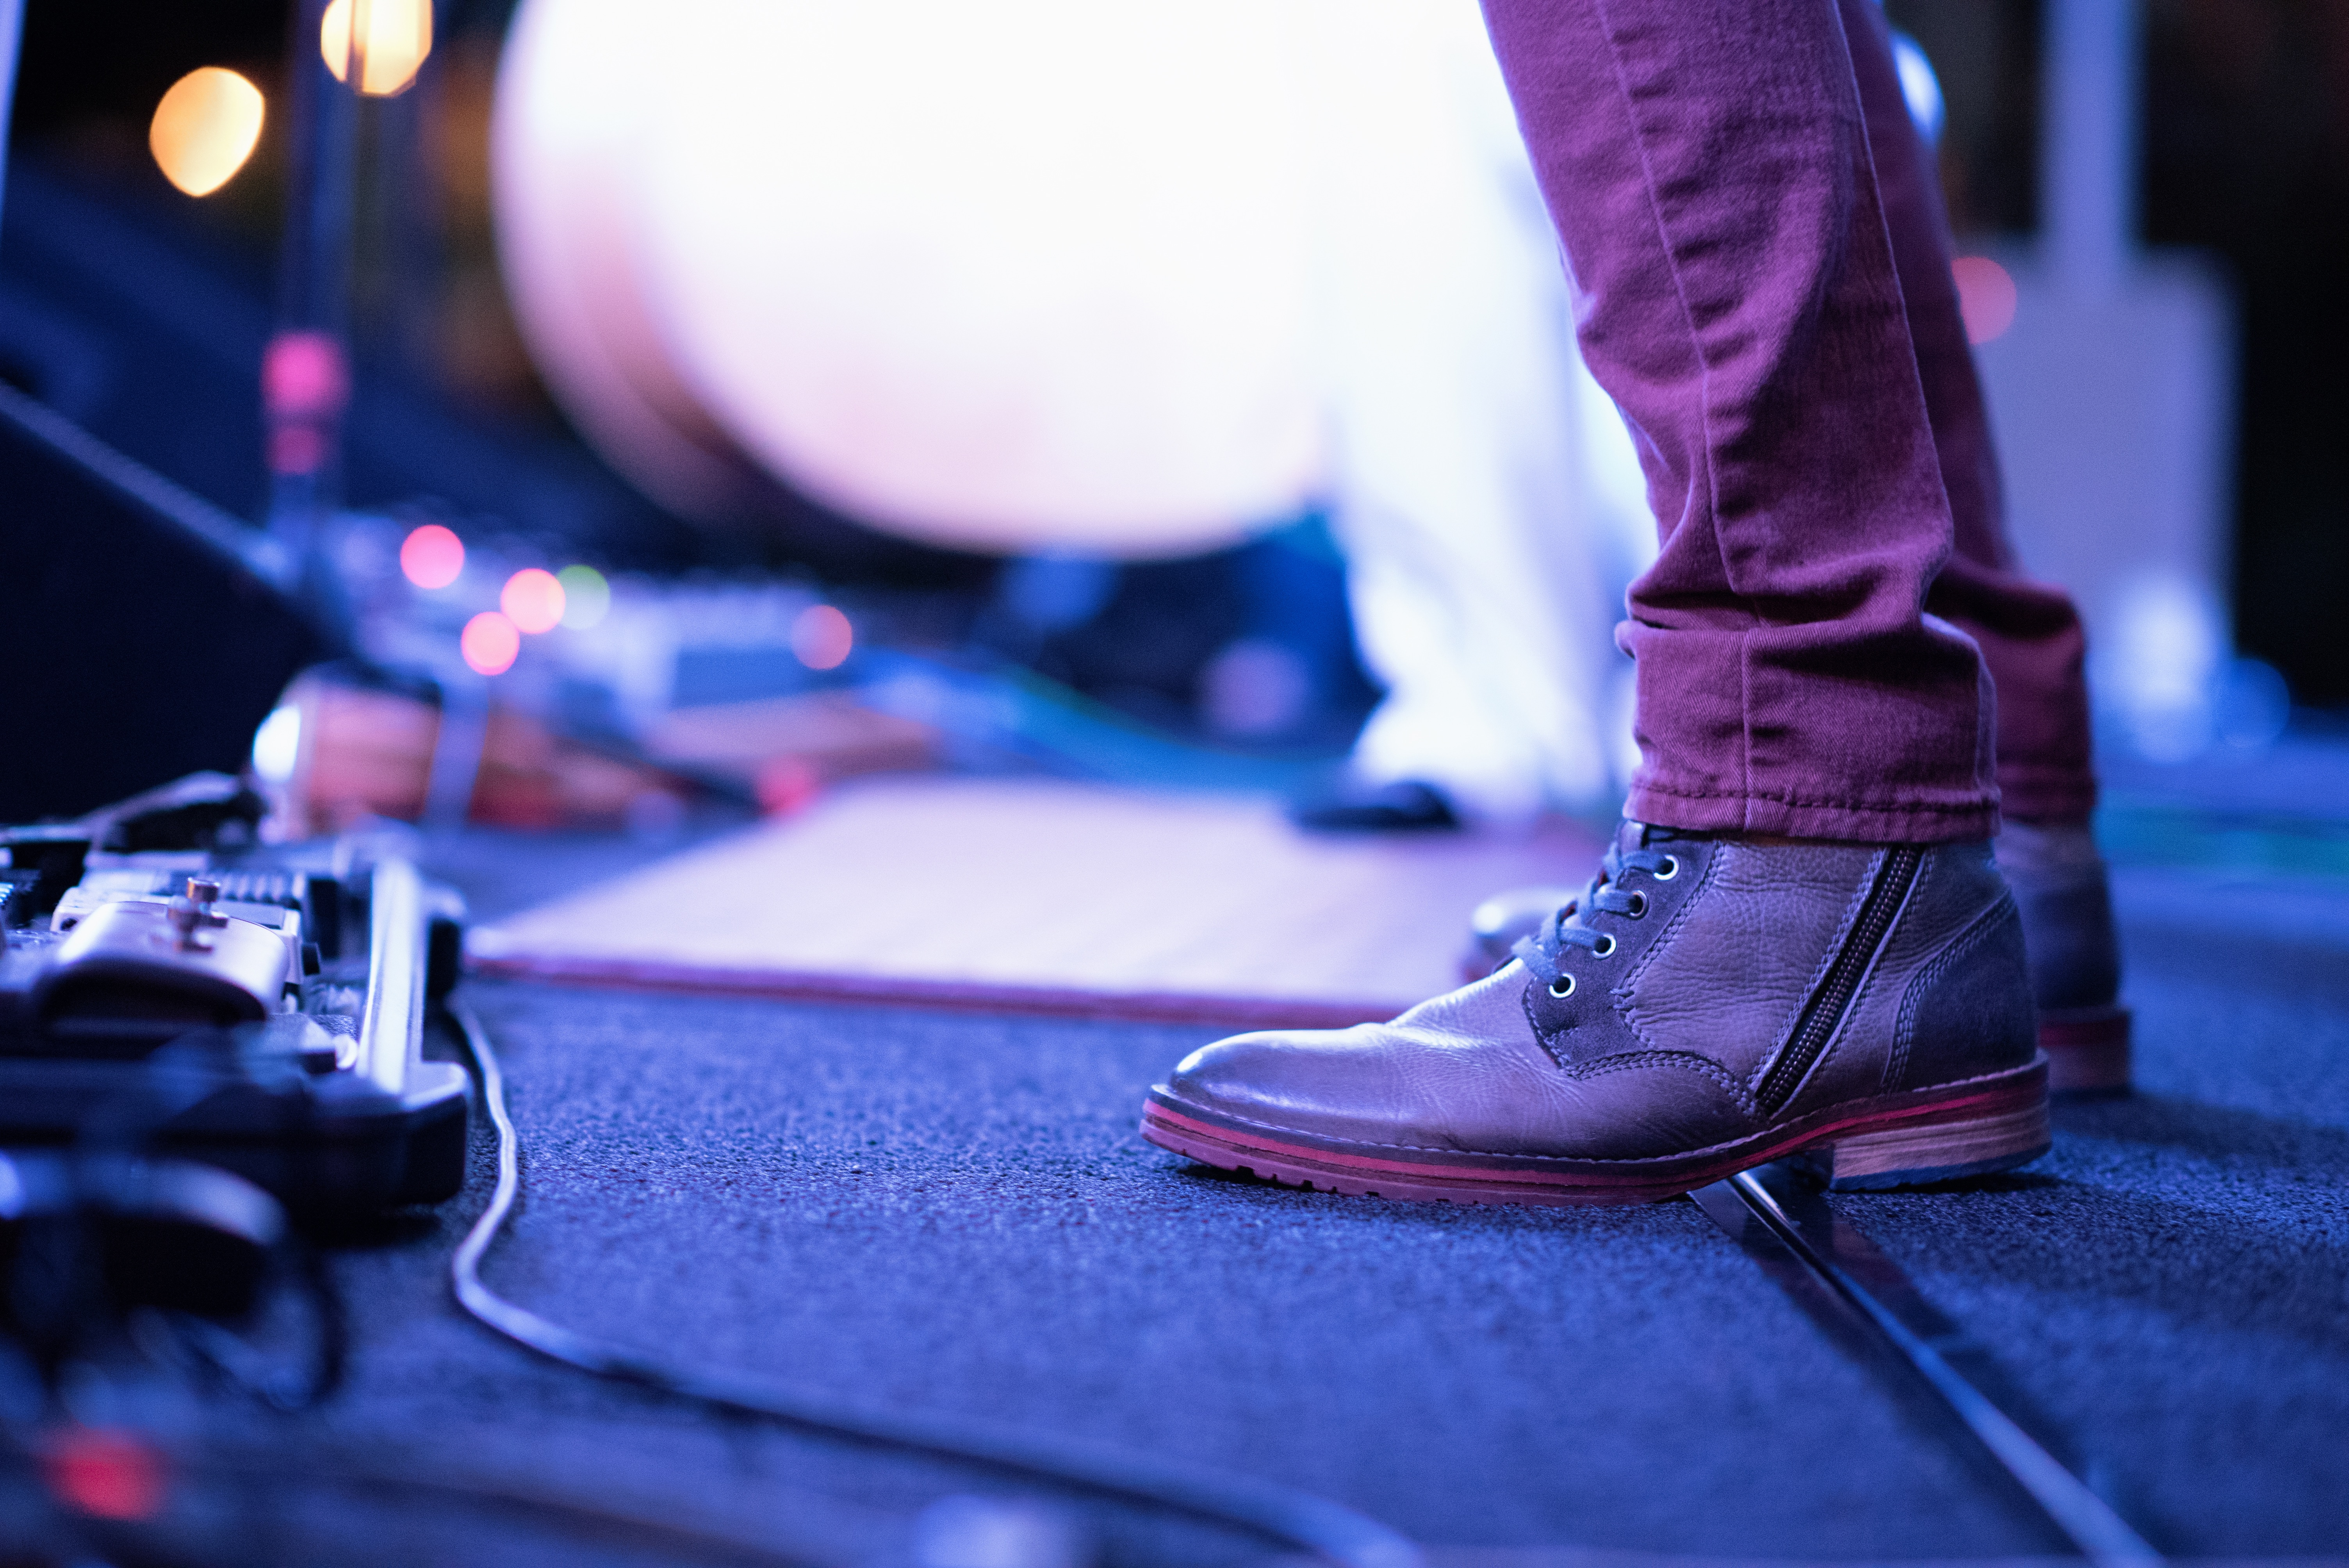 Musician feet on stage